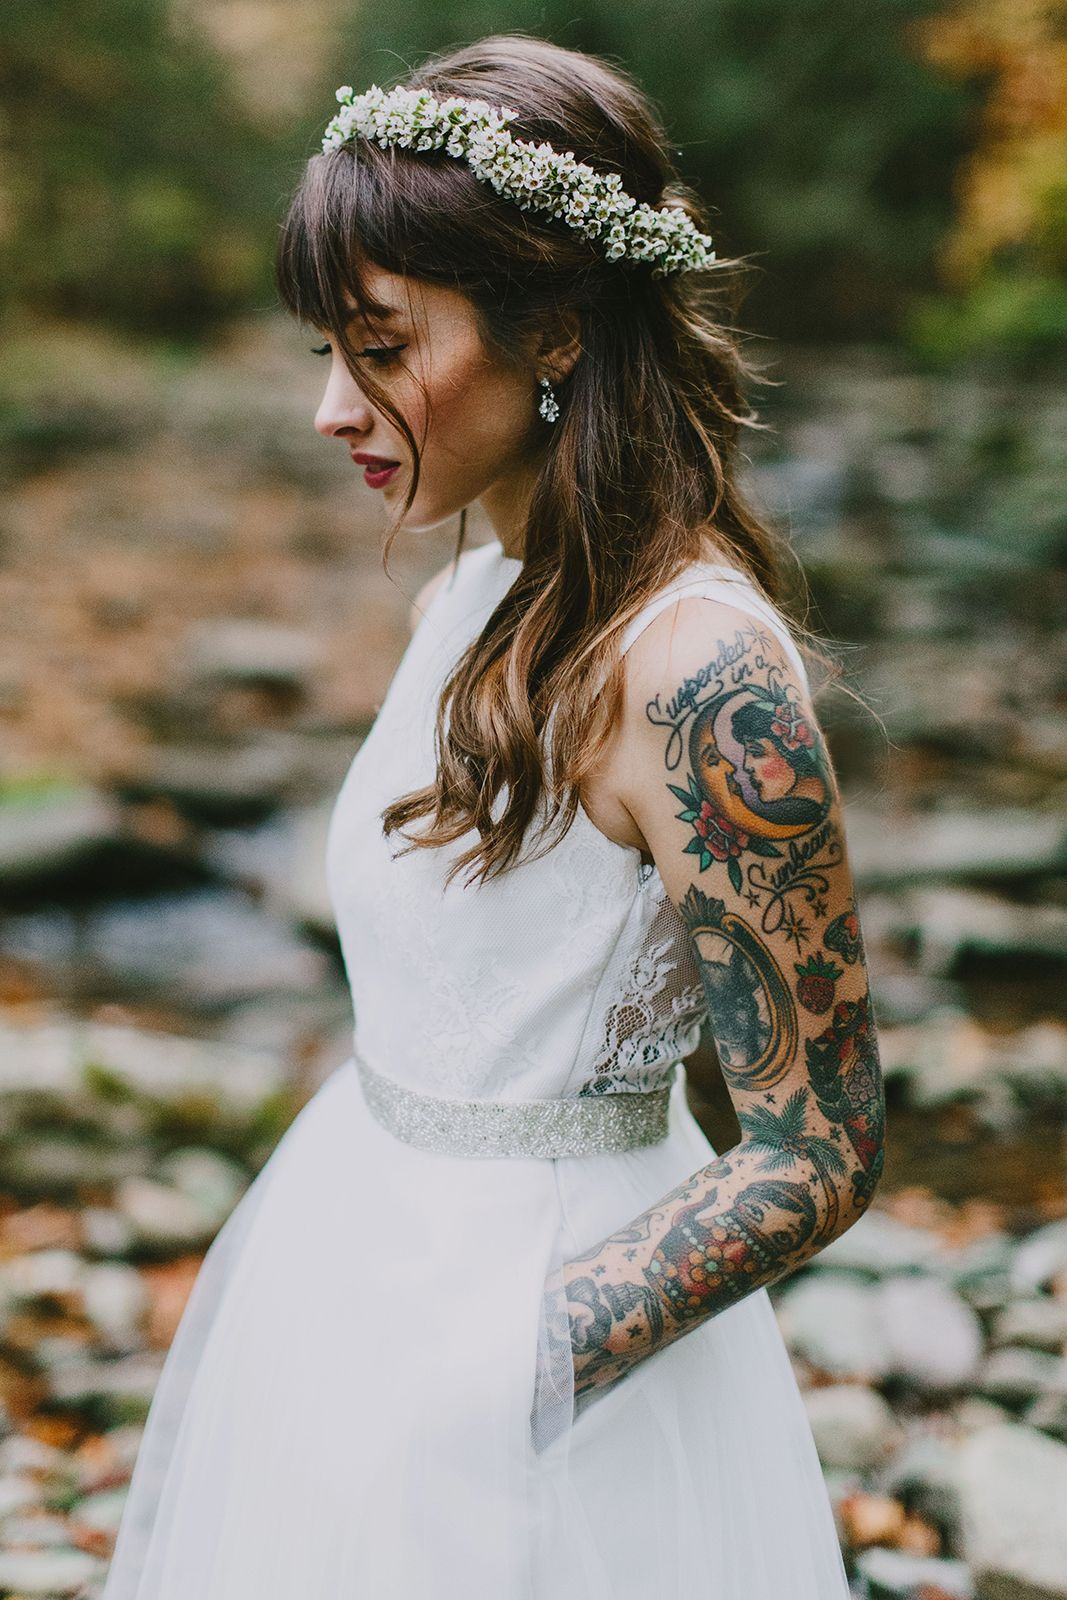 This Wedding In The Woods Has A Tattooed Bride